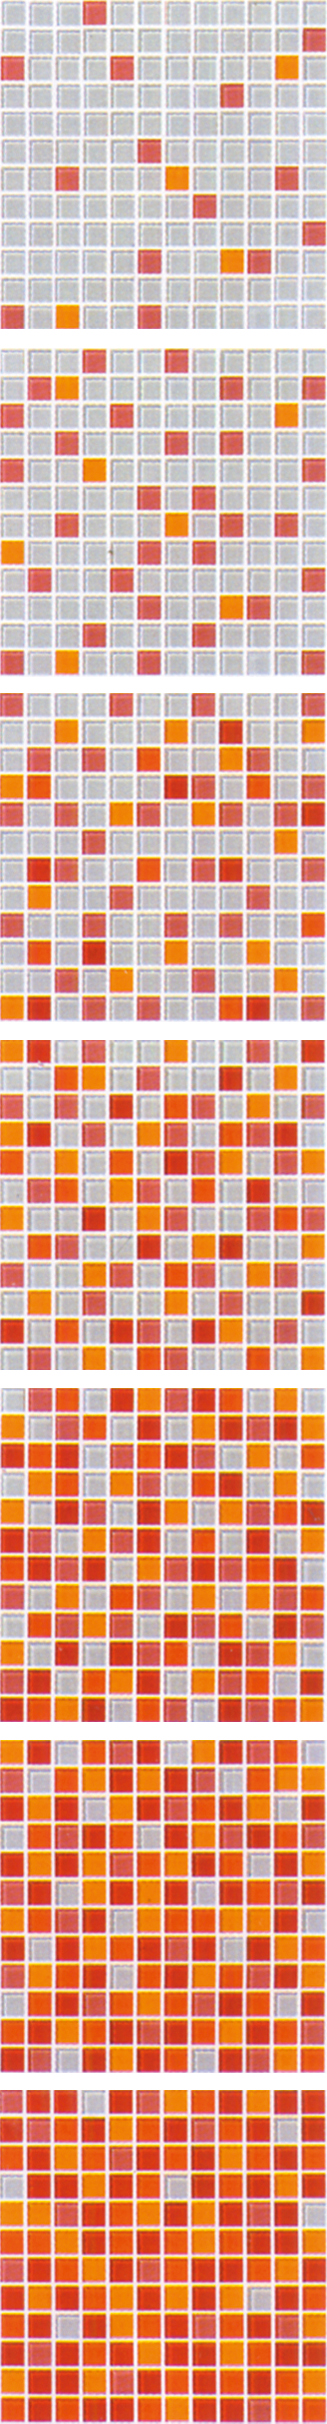 Orange Gradual Change Mosaic